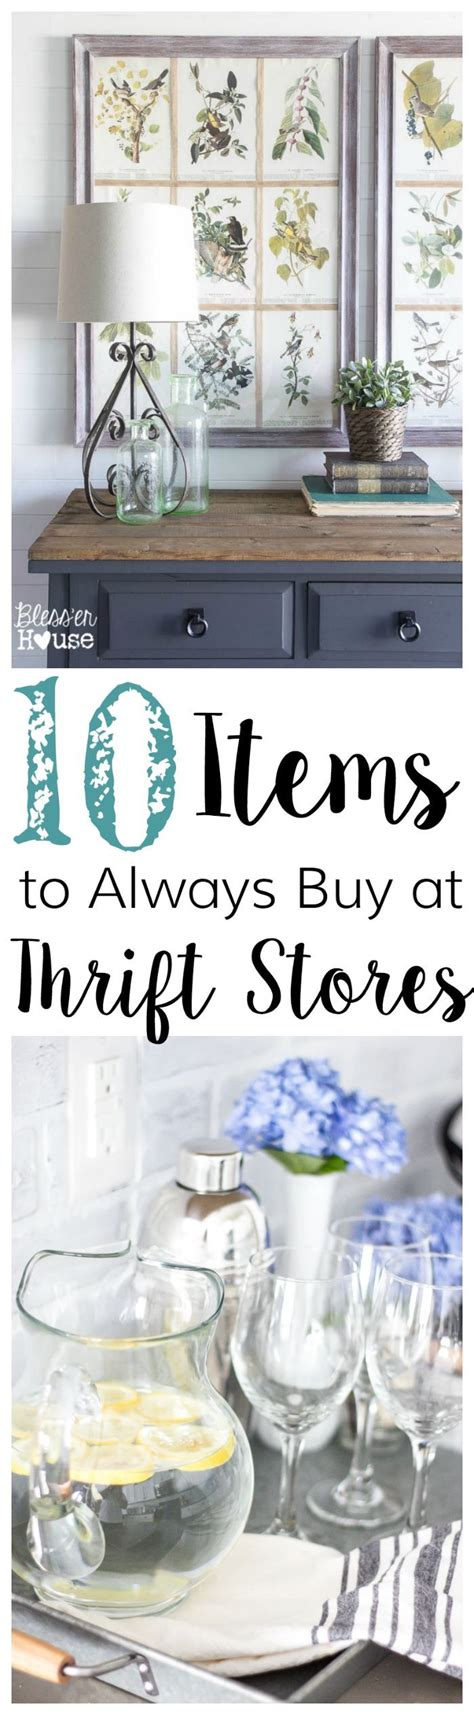 Where To Buy Inexpensive Home Decor 10 items to always buy at thrift stores inexpensive home